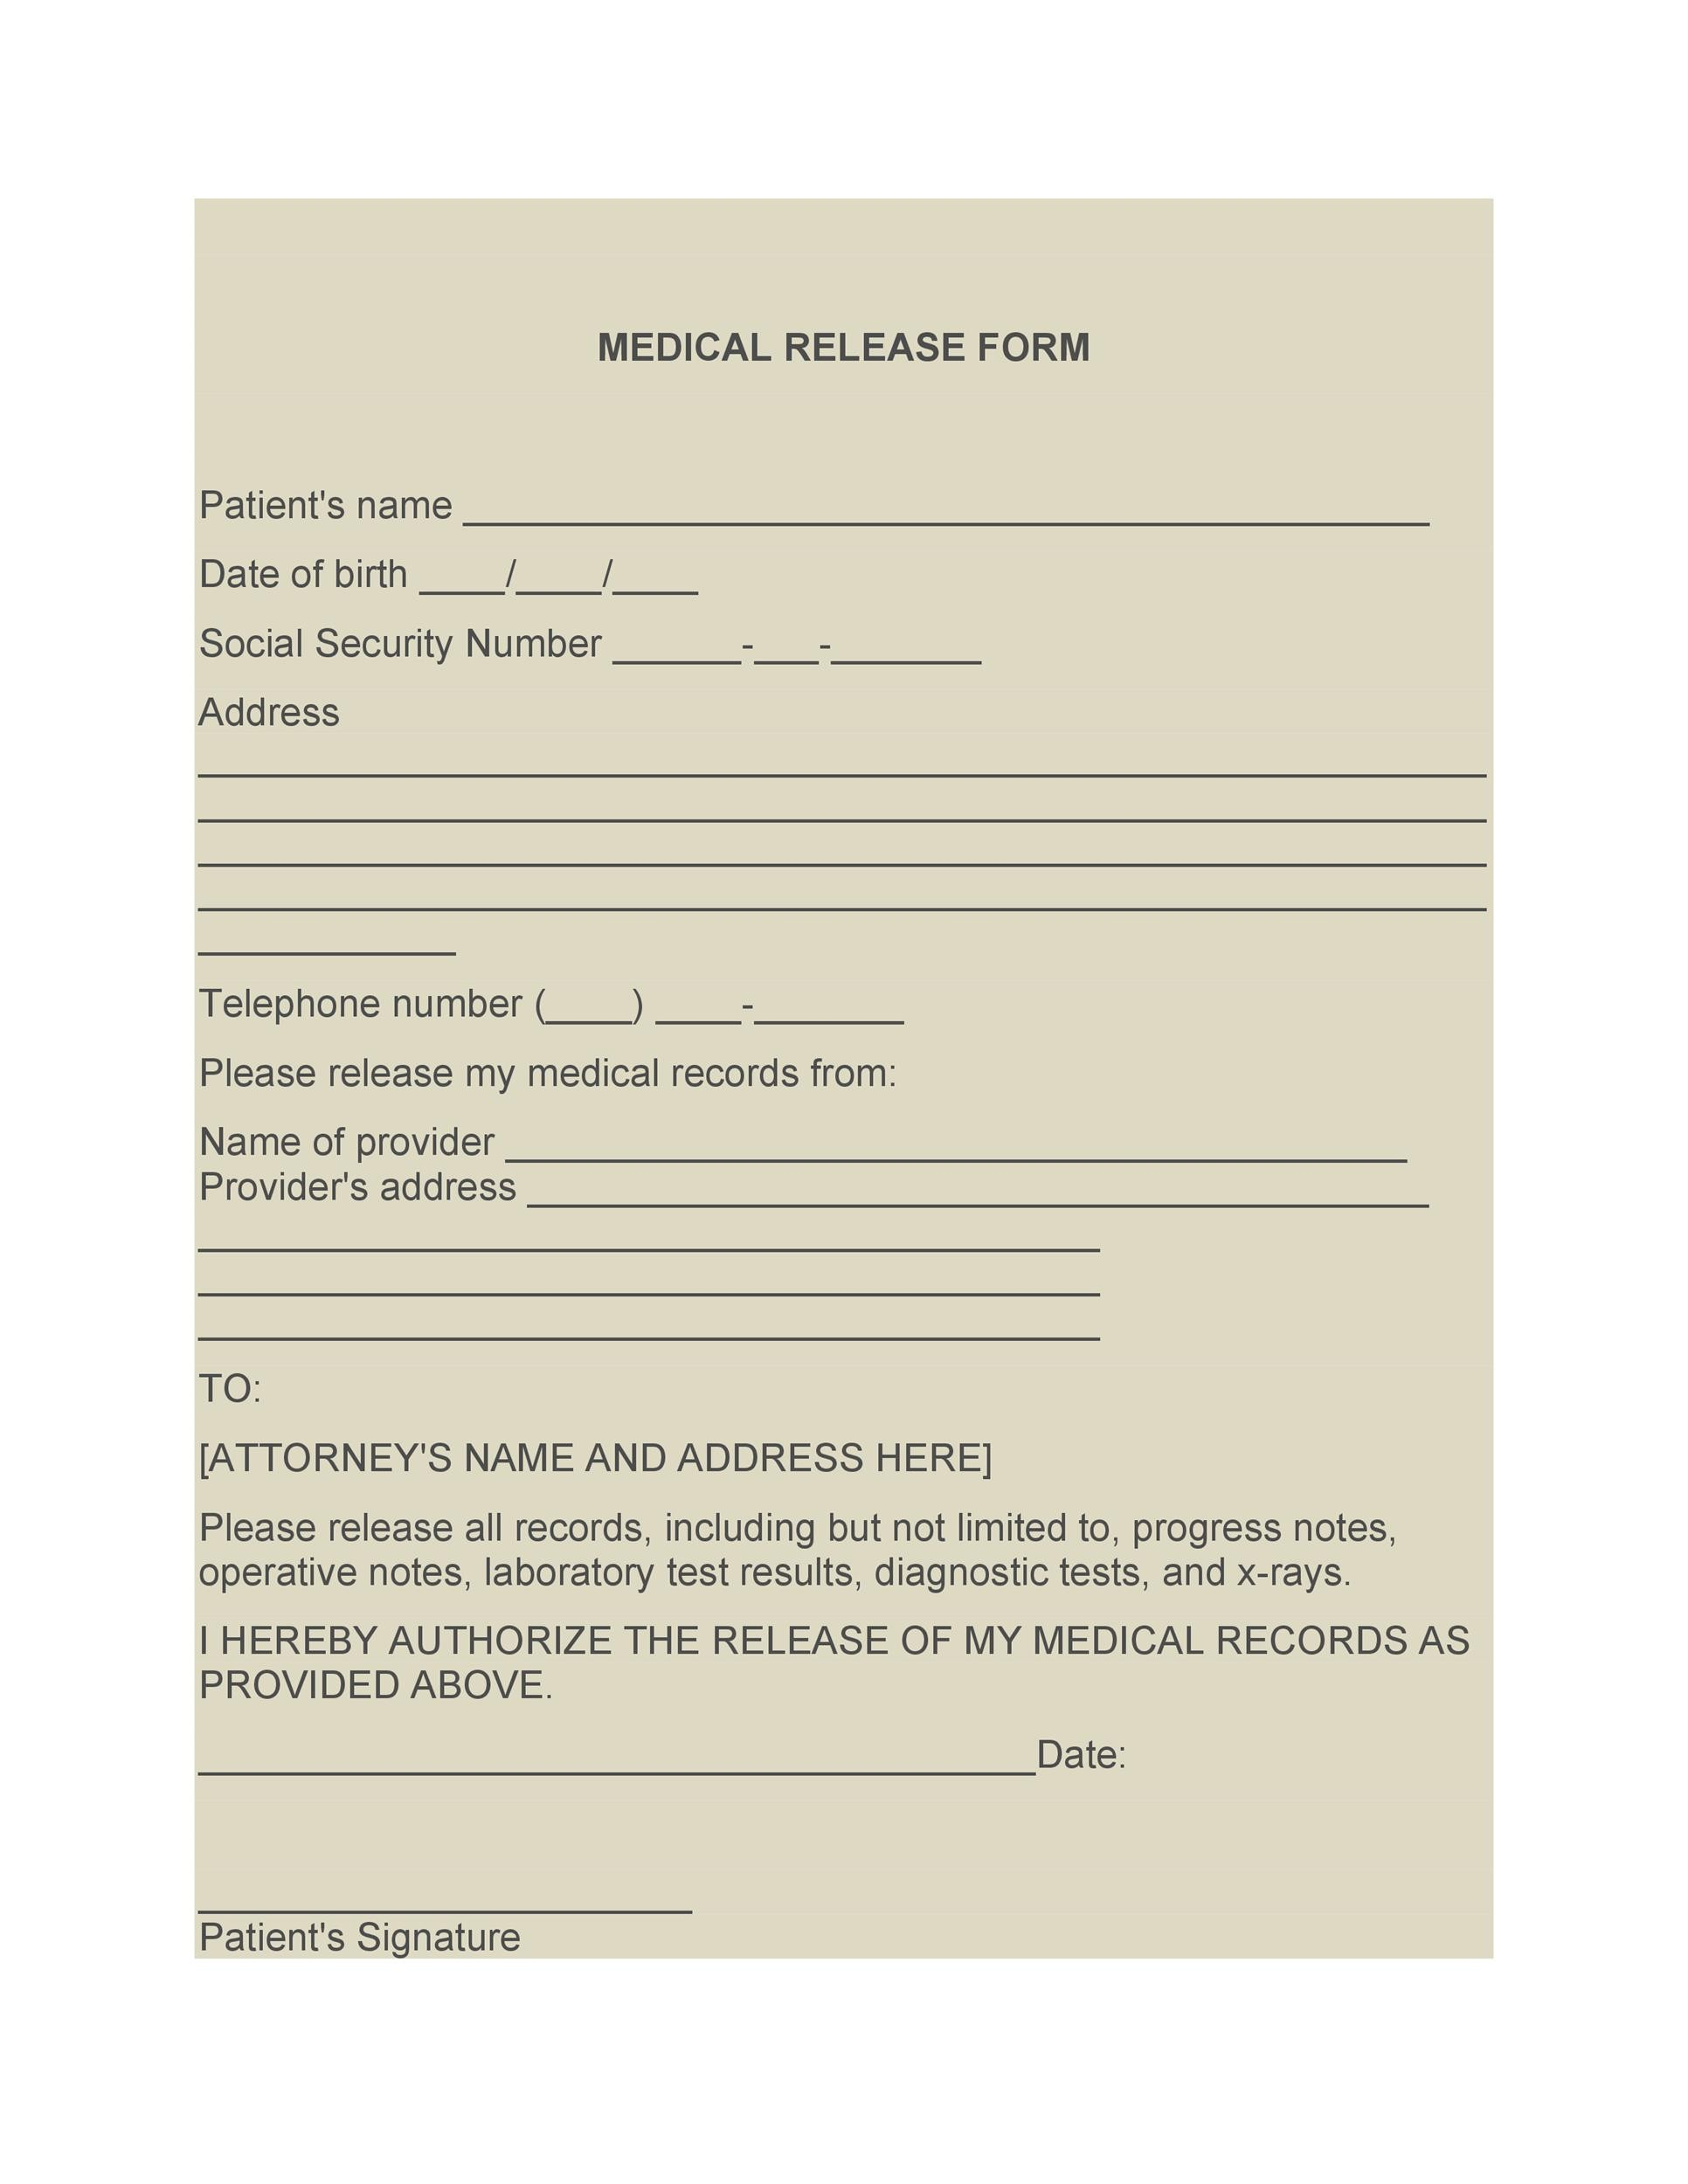 Printable Medical Release Form 02  Free Medical Form Templates